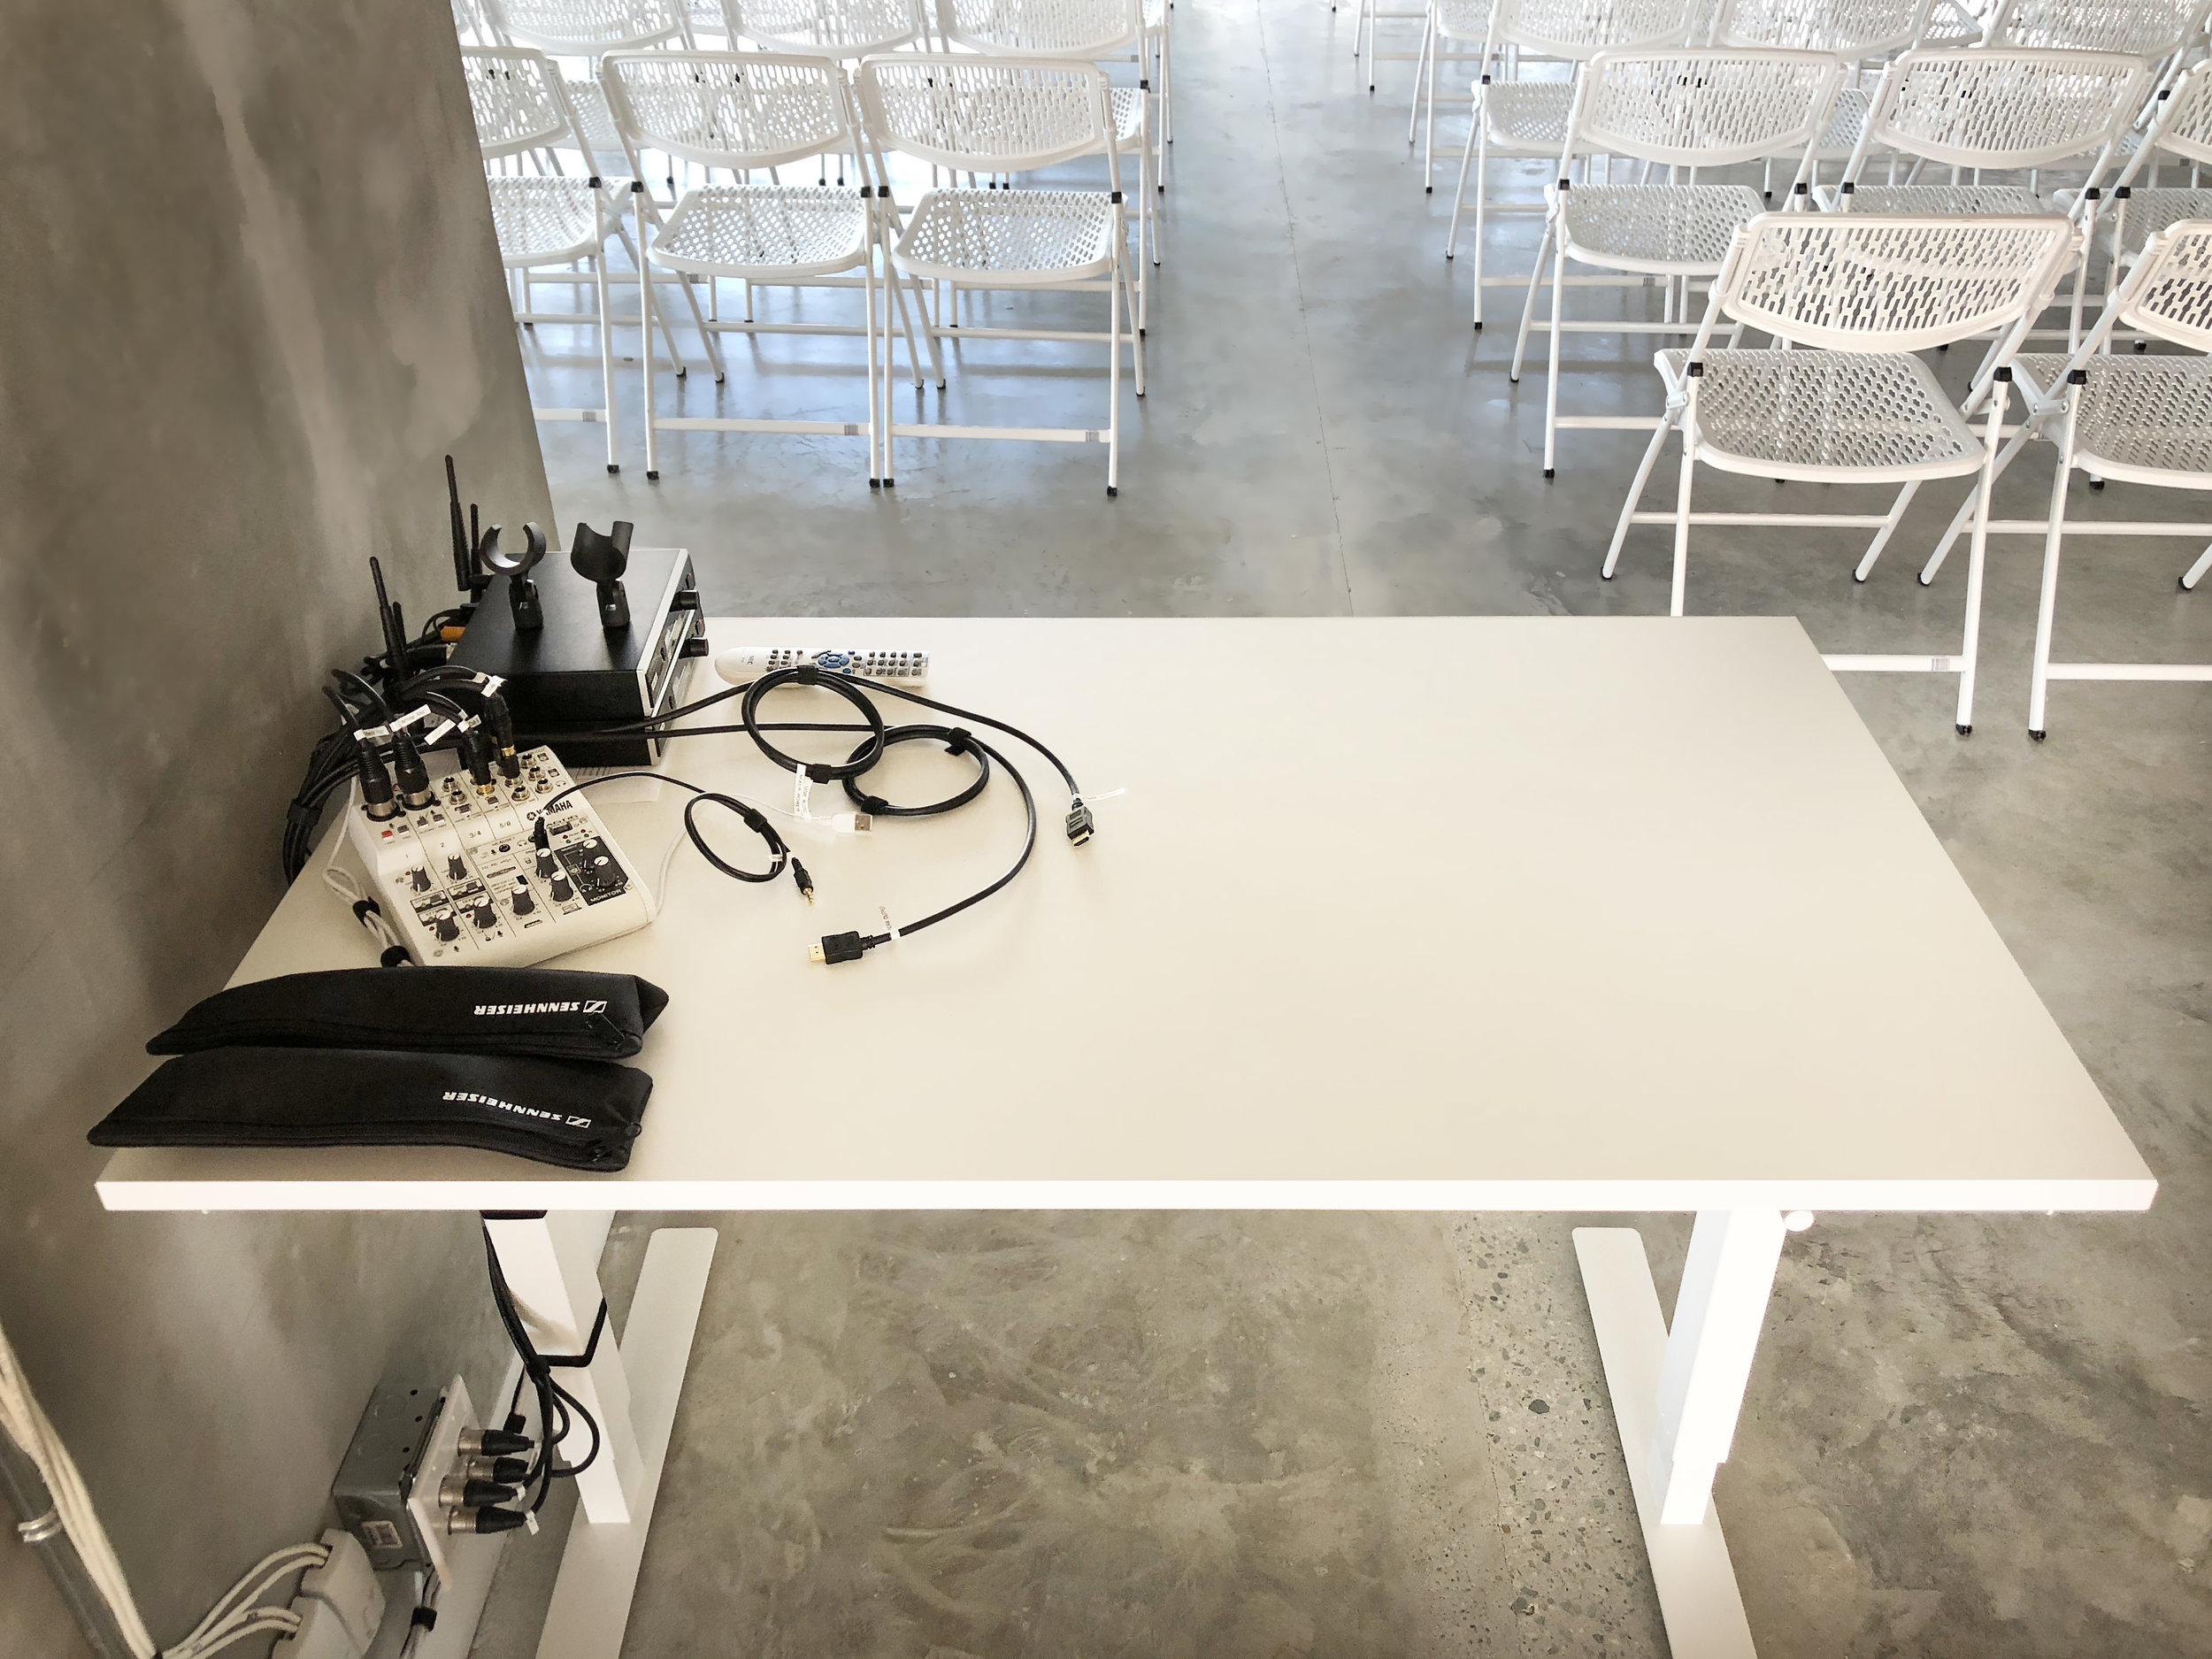 Temporary by nature, the microphones and peripheral equipment for the space is stored on a table at the back of the space, ready for the first gathering.